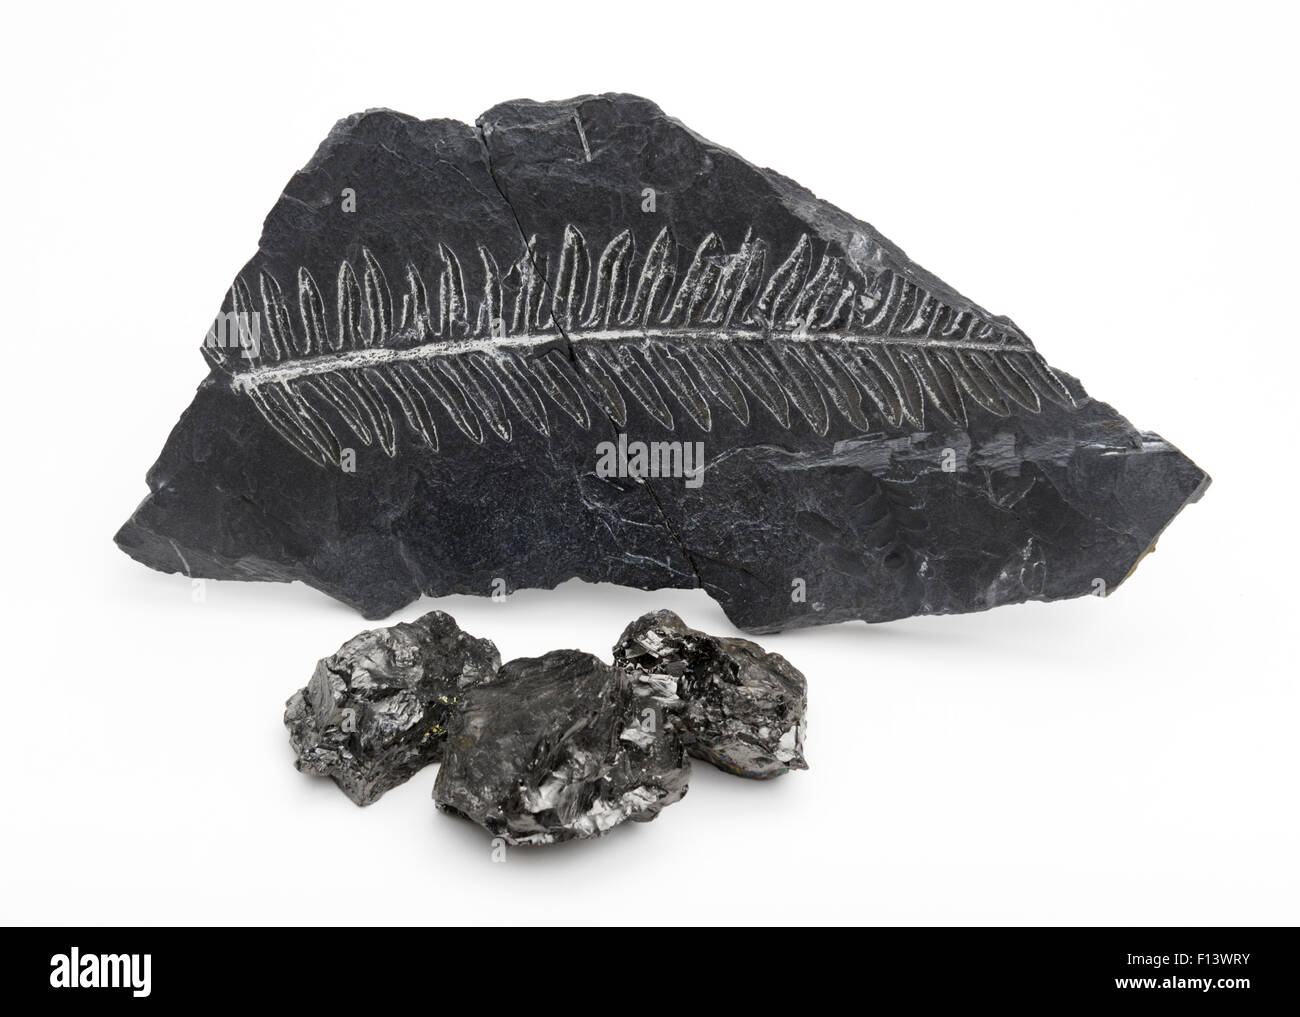 Coal with fern fossil in shale rock - Stock Image